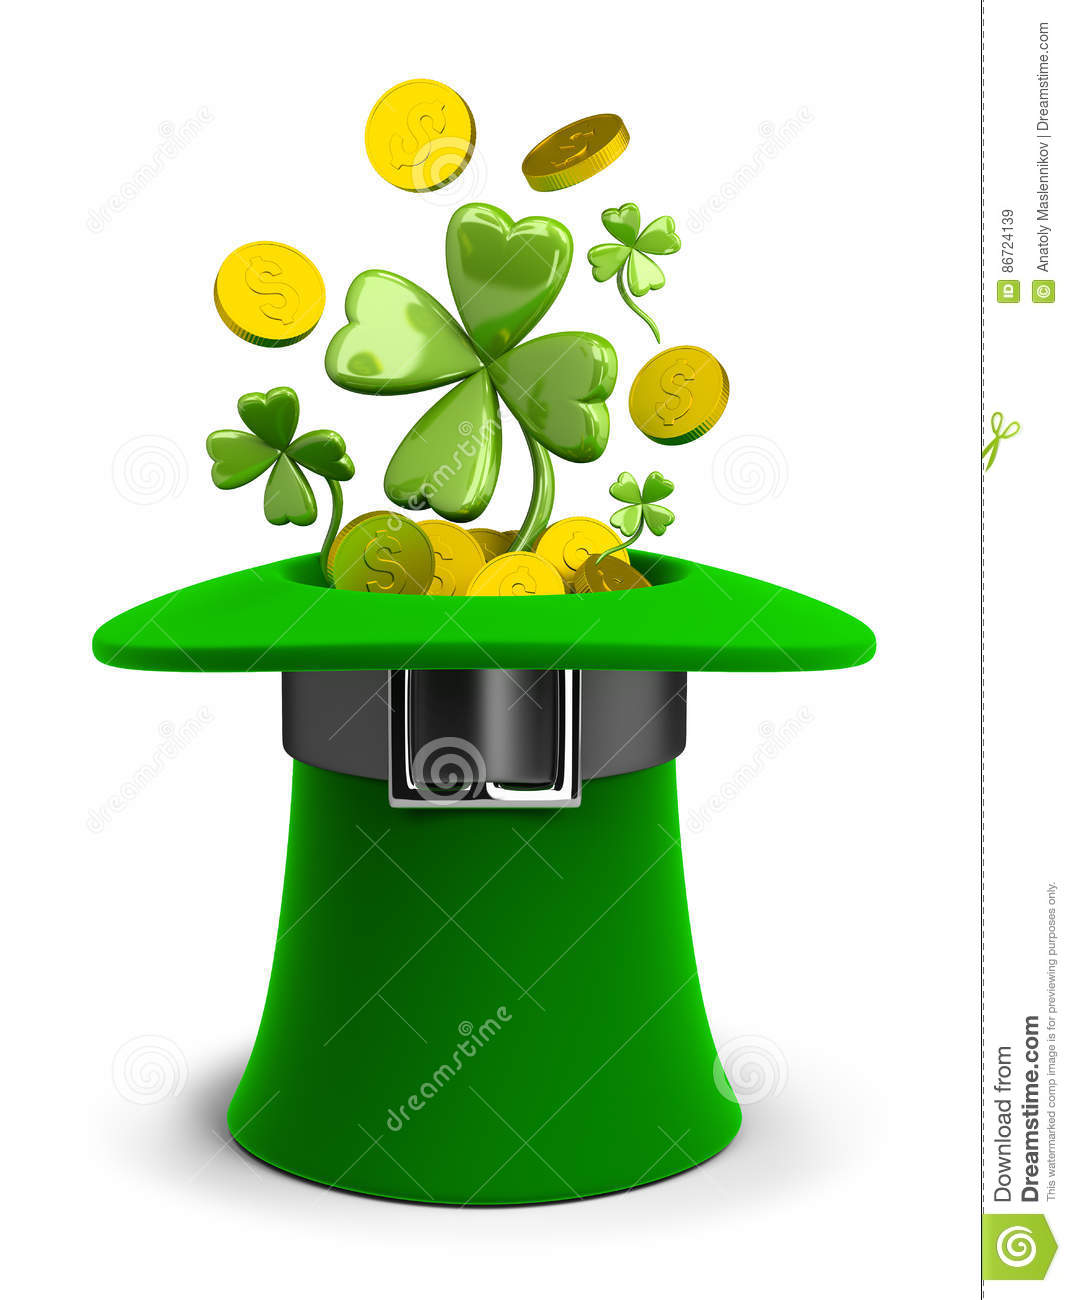 St Patricks hat with coins and clovers